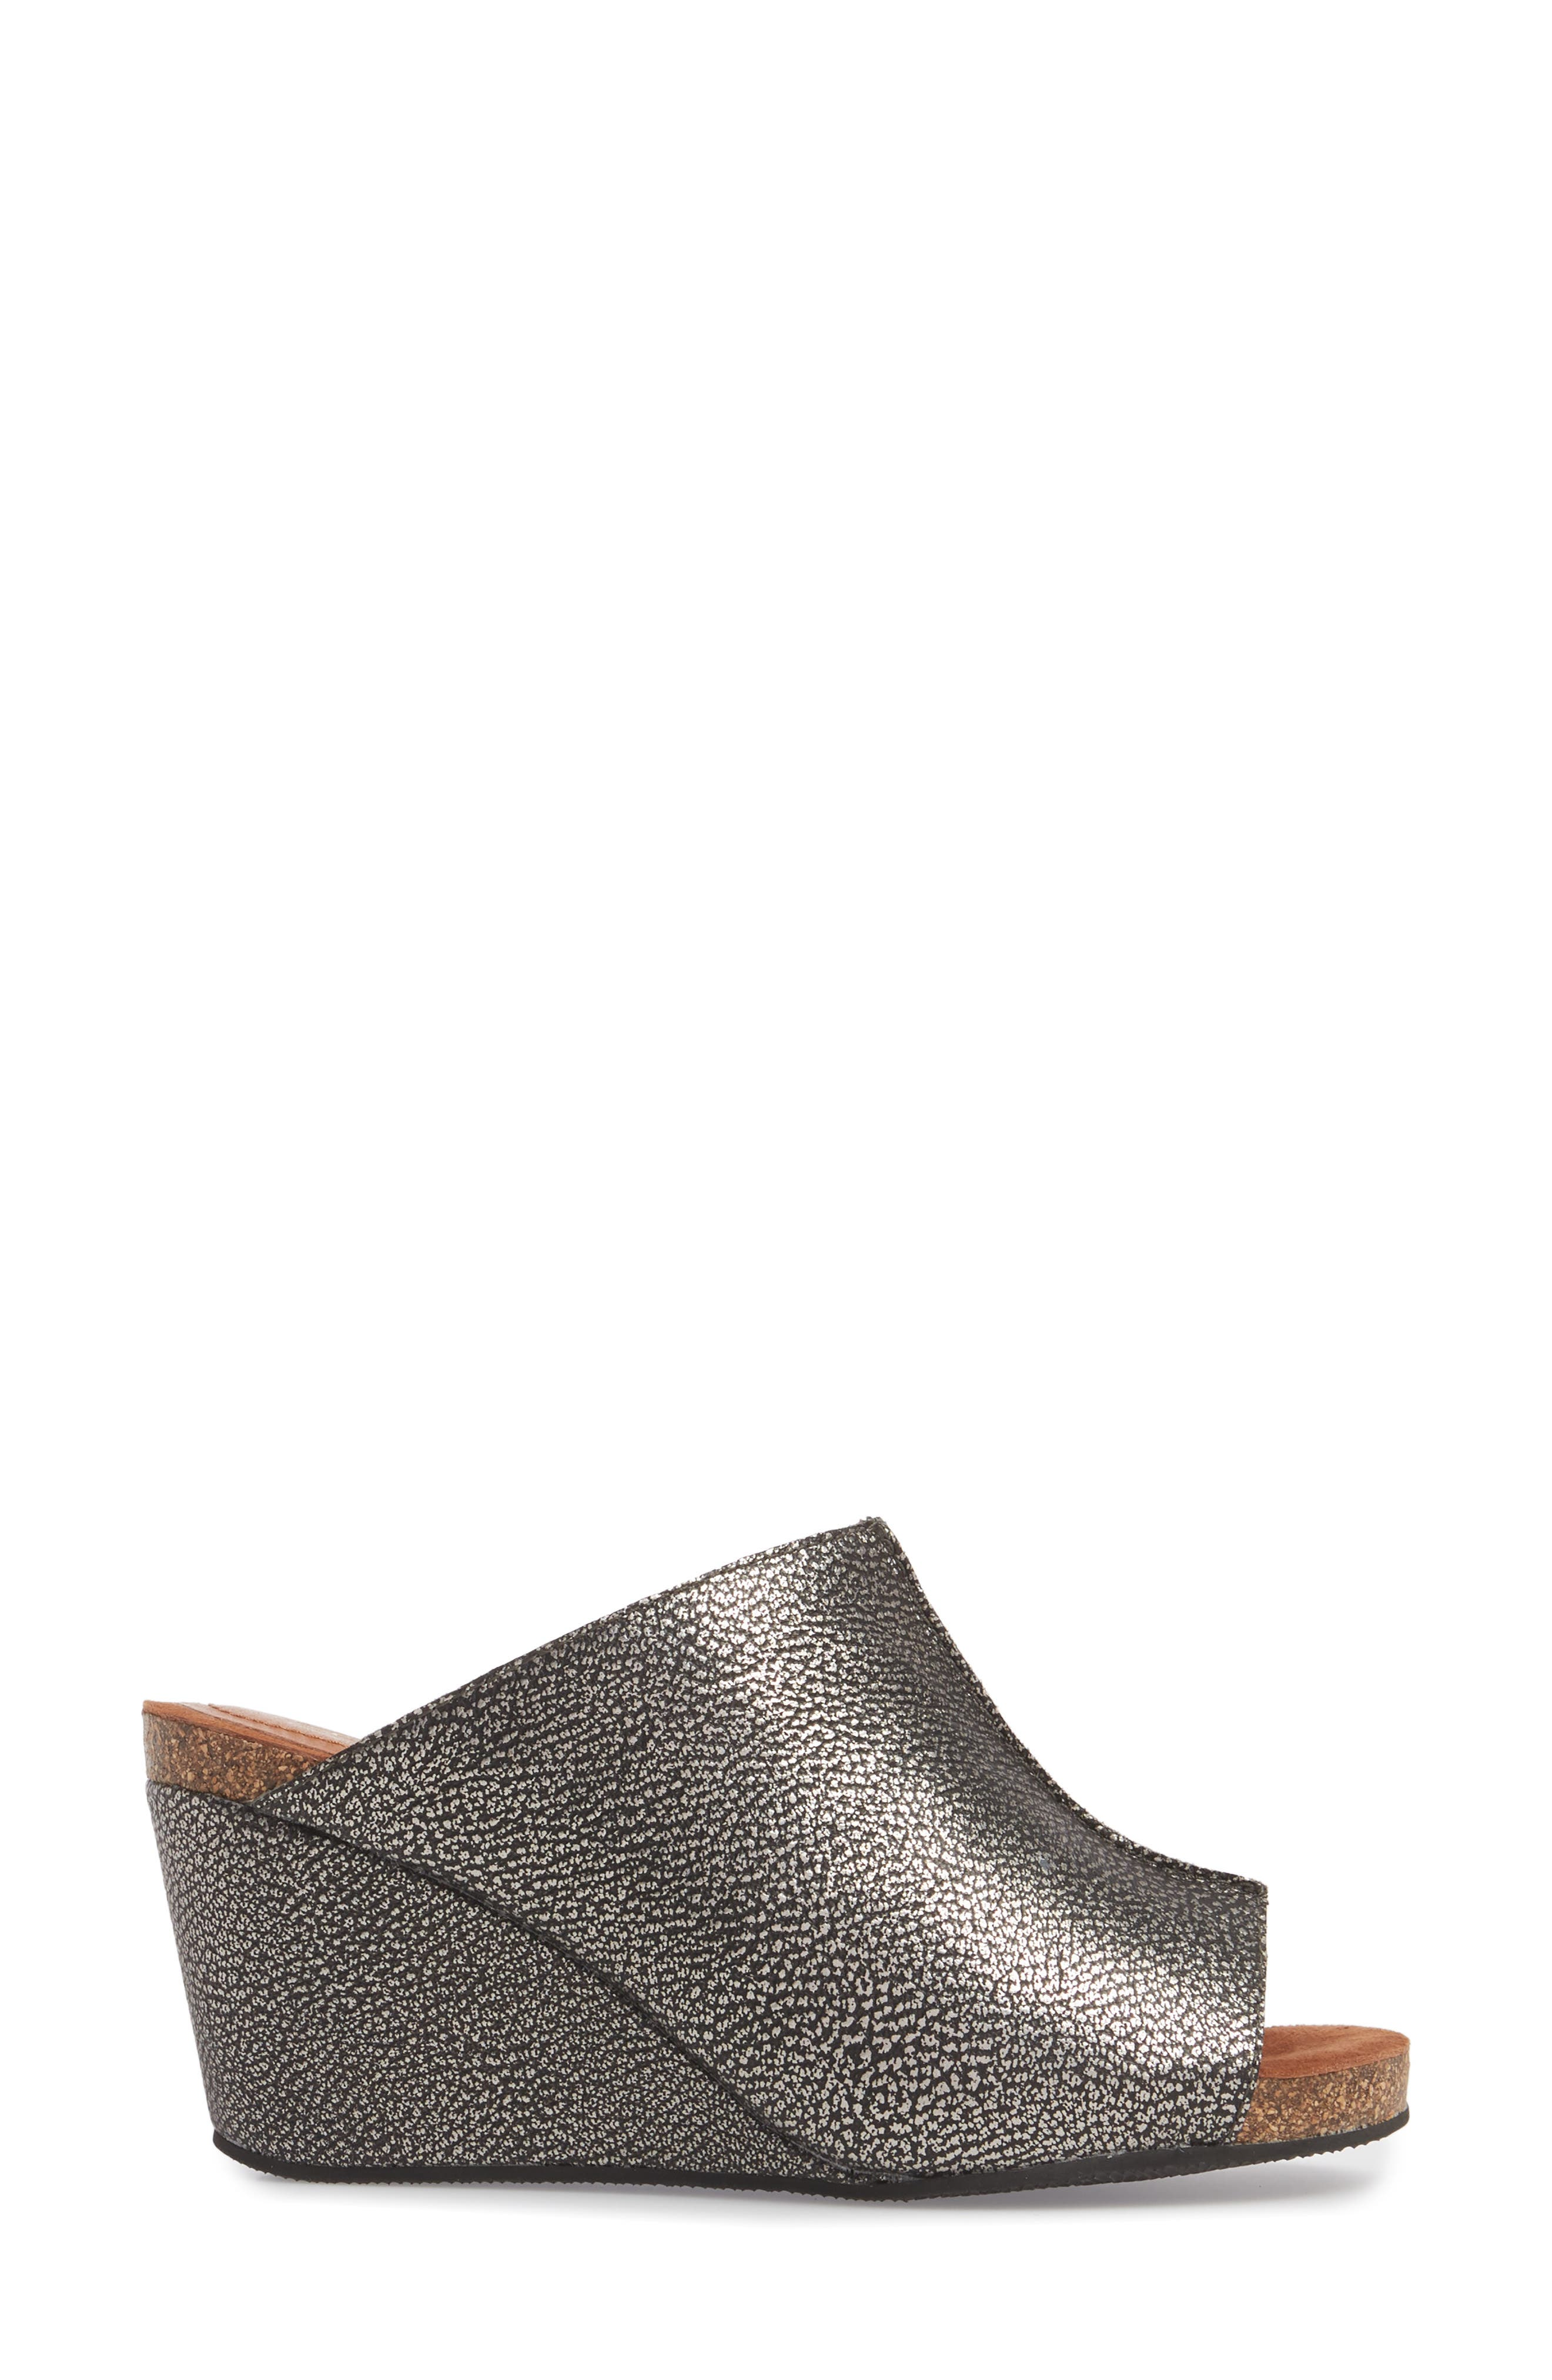 'Bailey' Suede Wedge,                             Alternate thumbnail 3, color,                             Pewter Leather